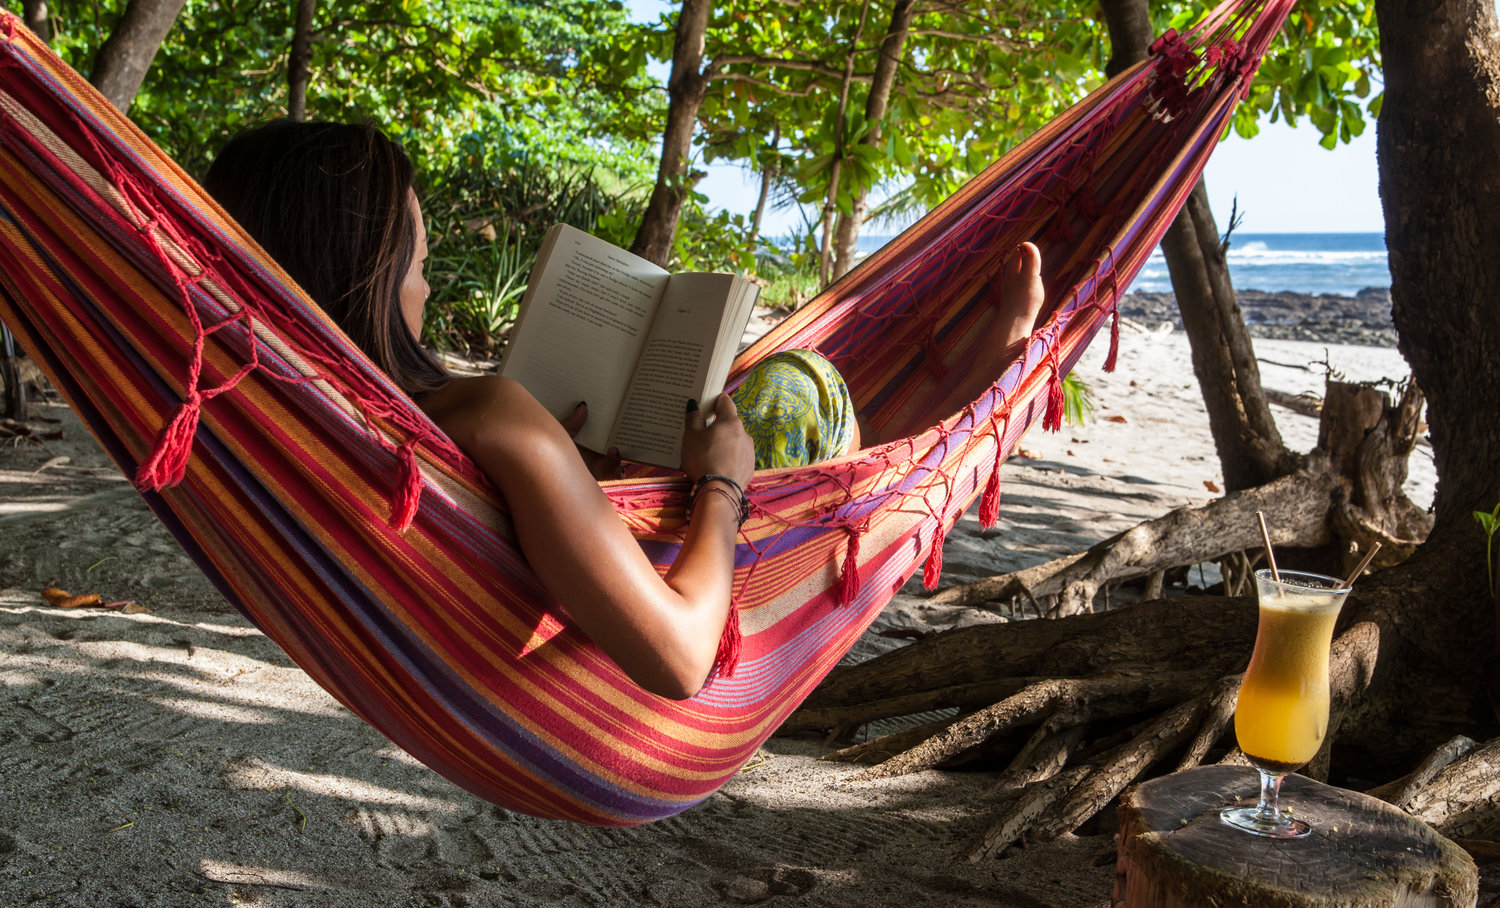 Relaxing in a hammock with a good book is an ideal way to recover between surf sessions